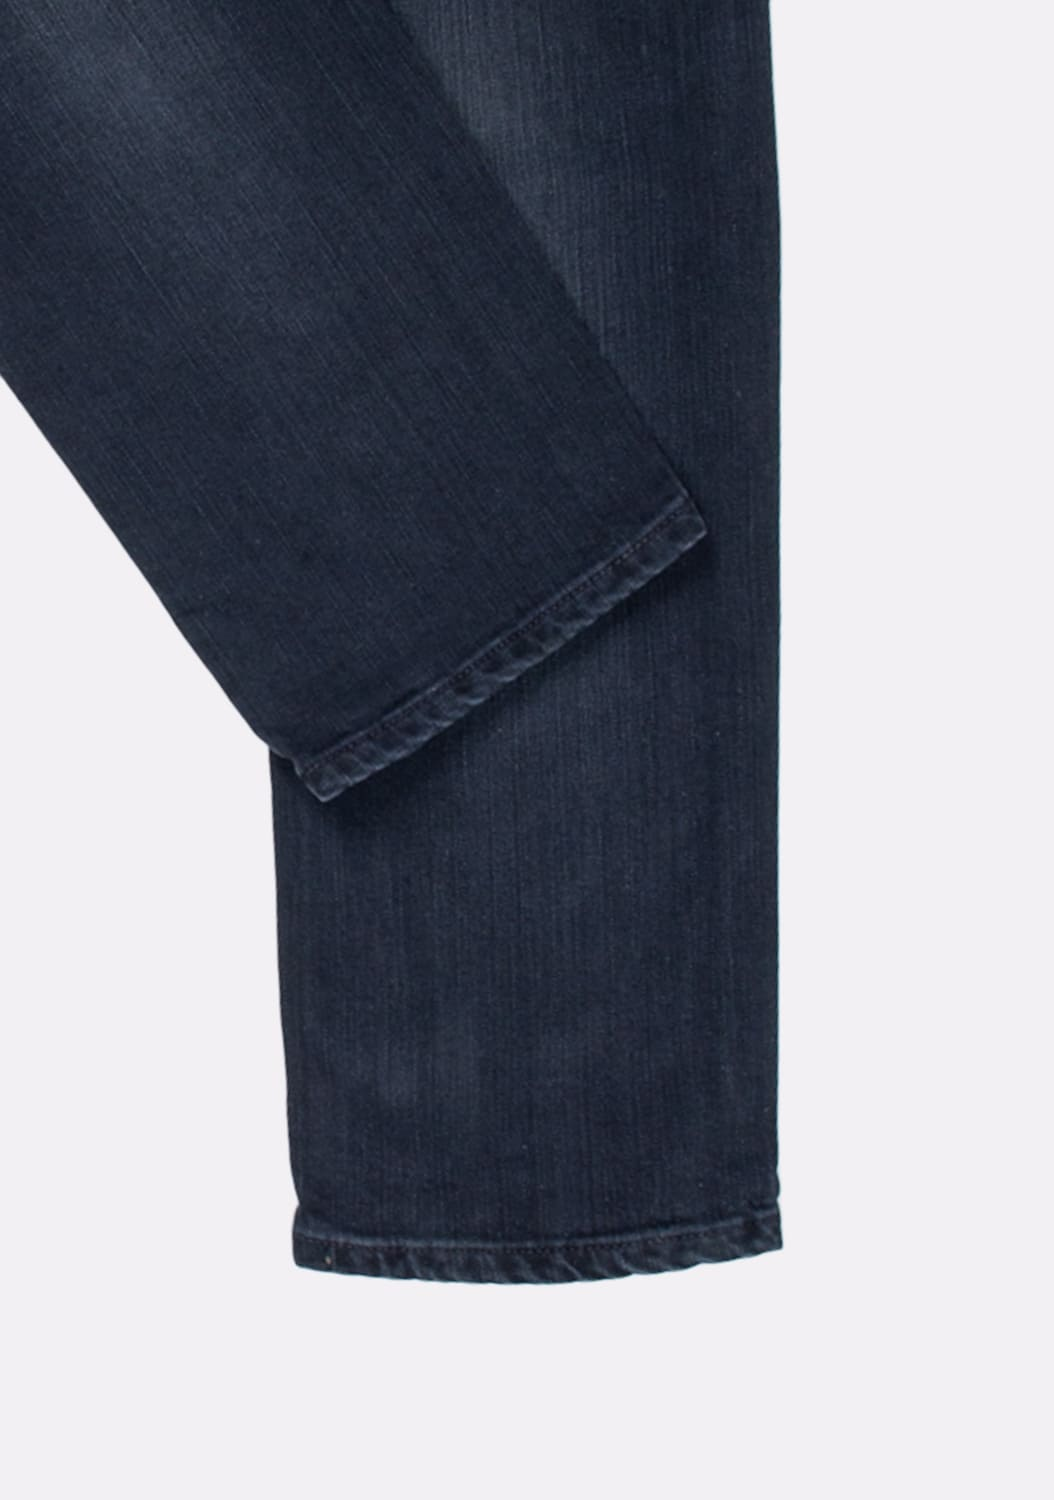 Nudie-Jeans-Lean-Dean-Black-Changes-34-34-juodi-dzinsai (7)